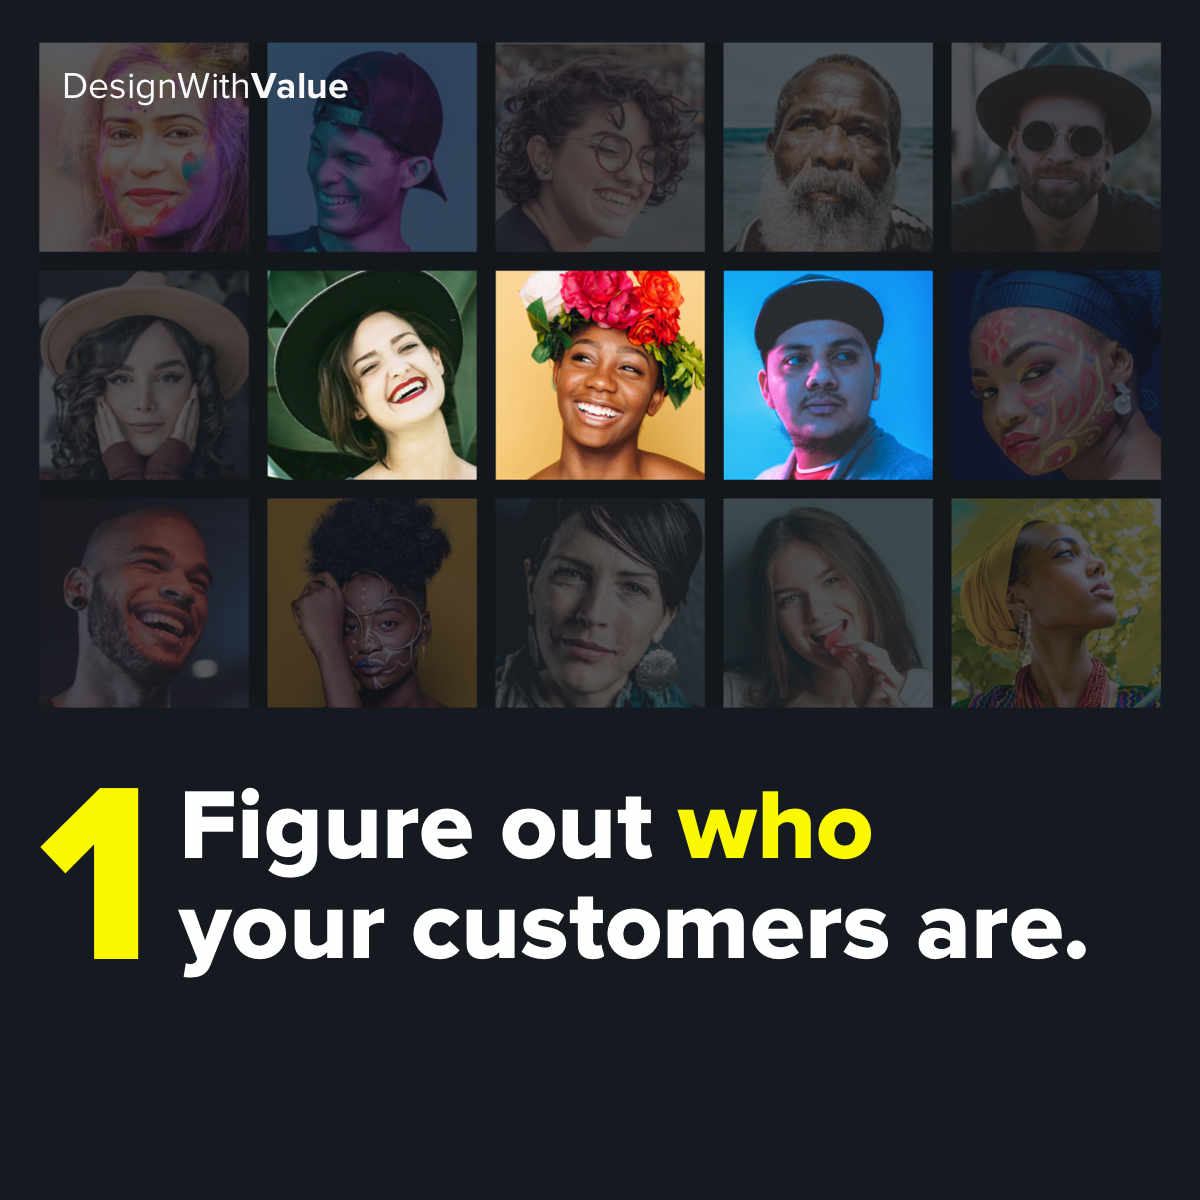 First figure out who your customers are